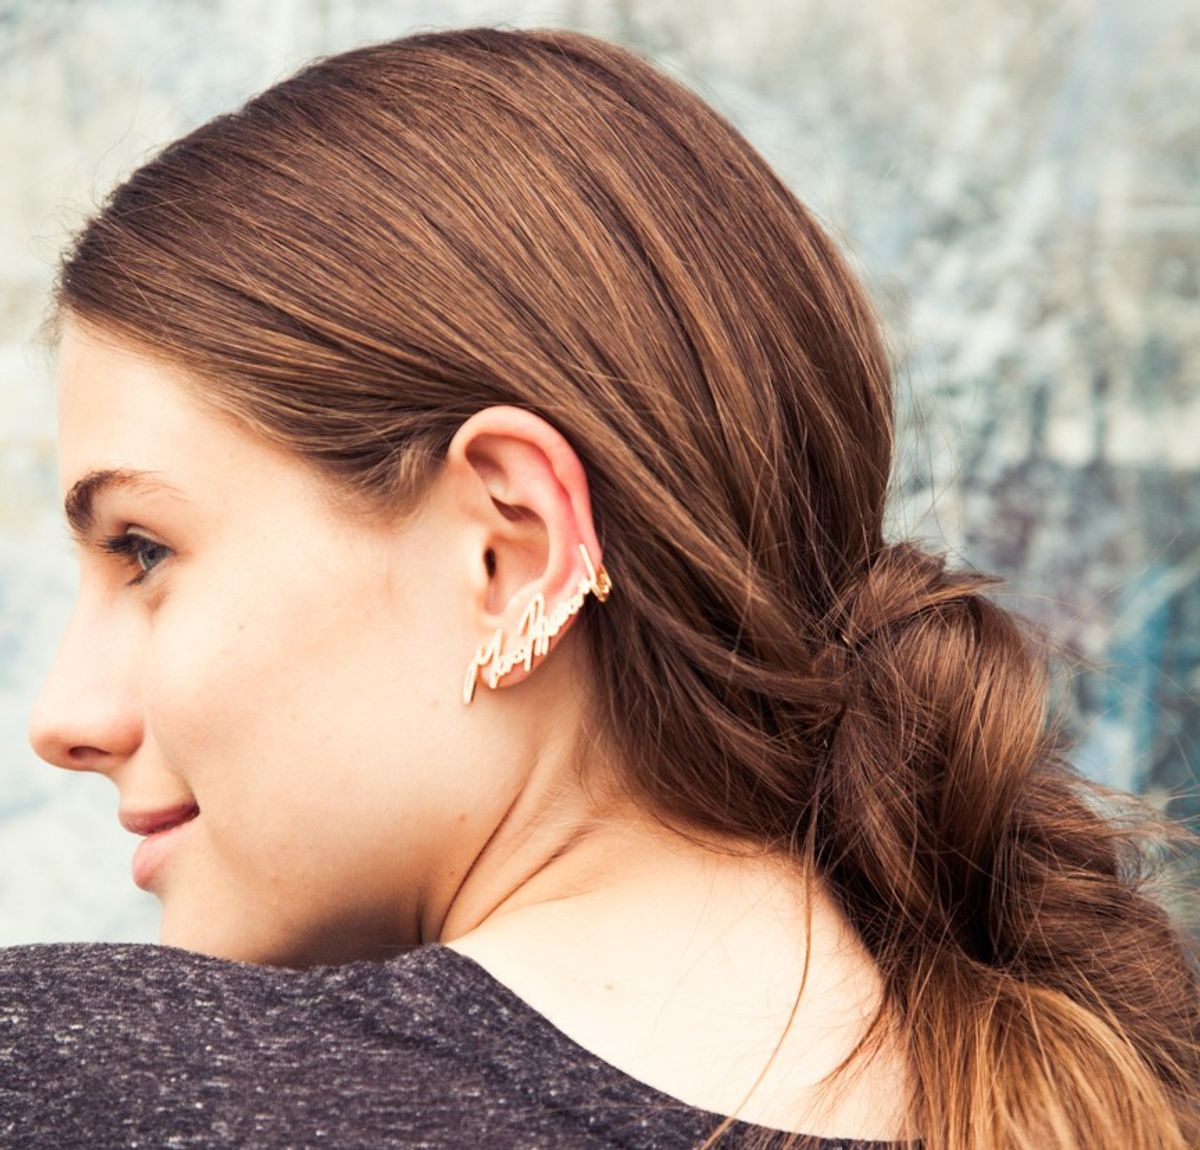 3 Hairstyles to Show Off This Season's Statement Earrings